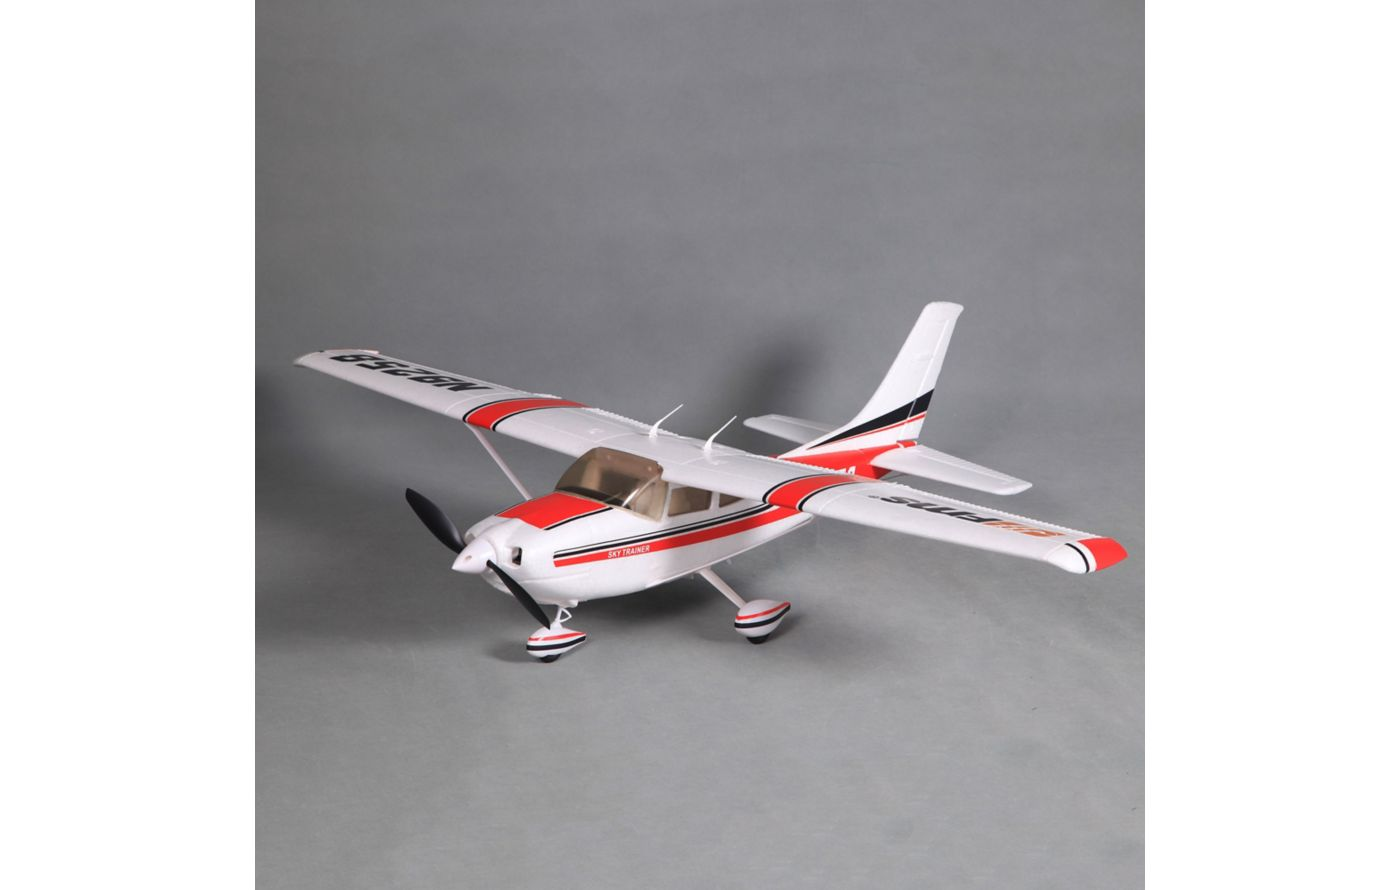 Image for Sky Trainer 182 V2 RTF, 1100mm: Red from Force RC